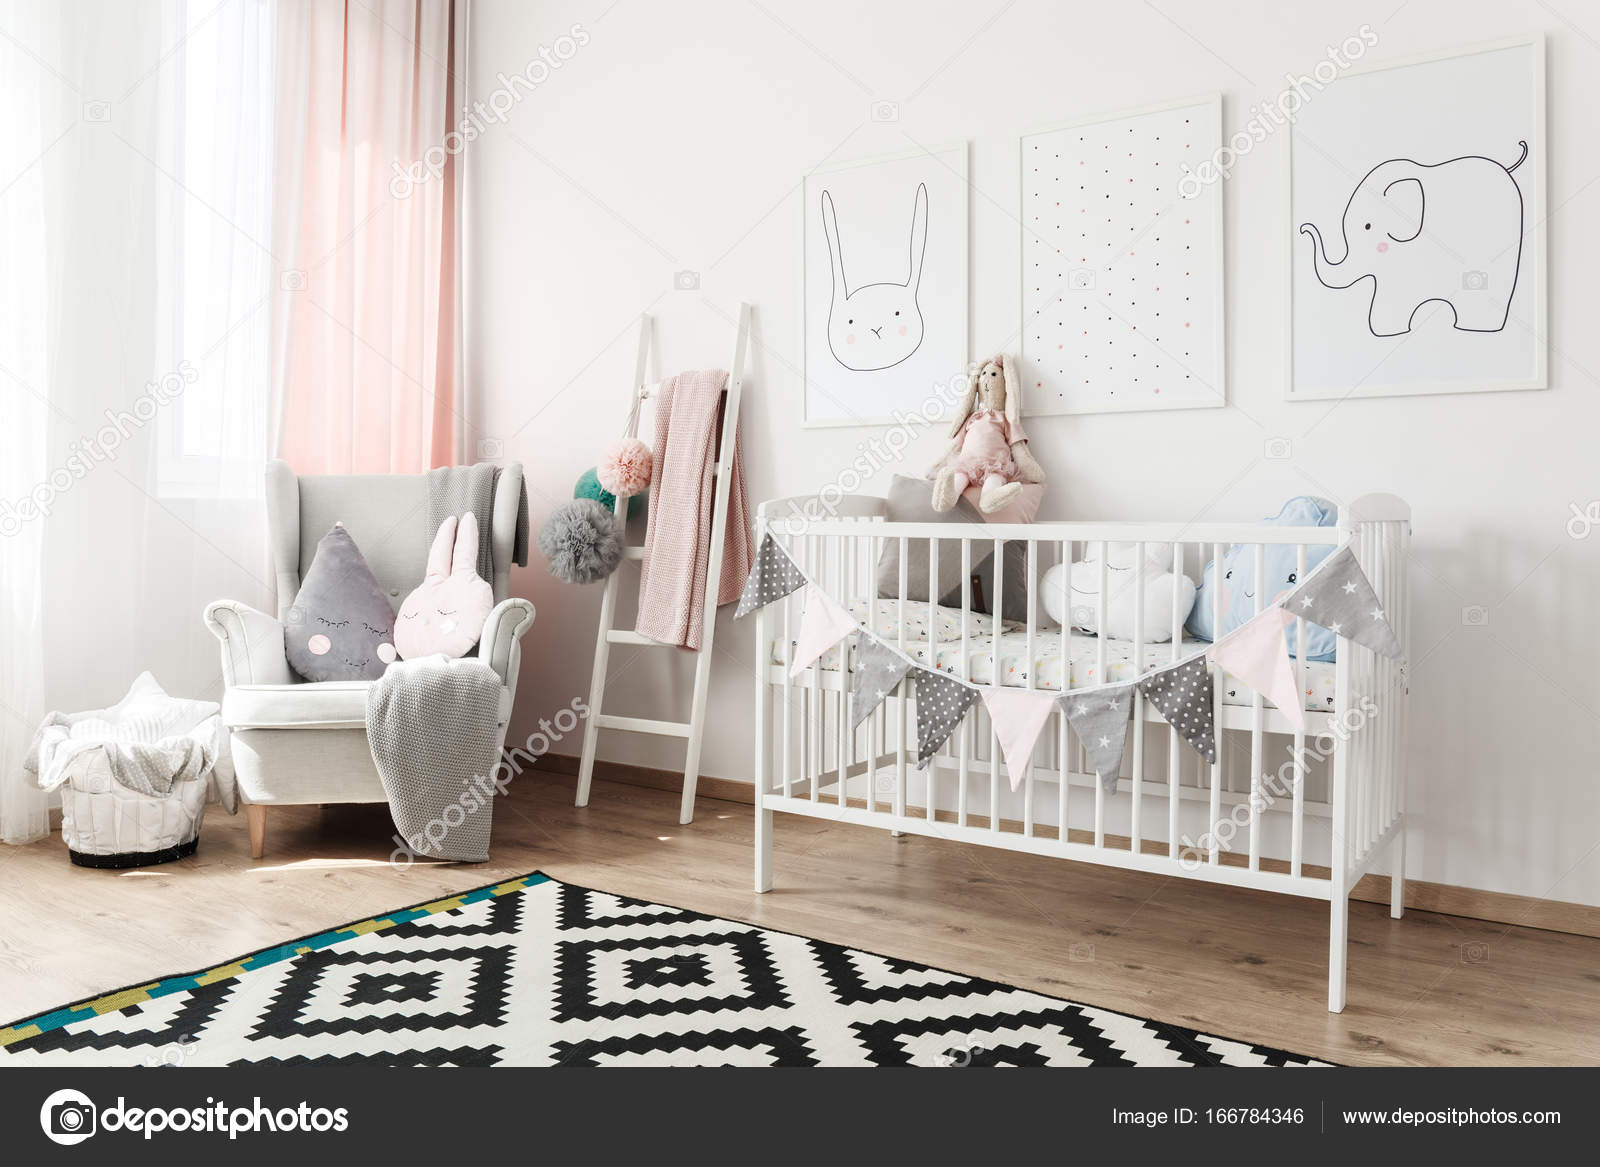 Sessel Kinderzimmer Scandi Kinderzimmer Mit Sessel Stockfoto Photographee Eu